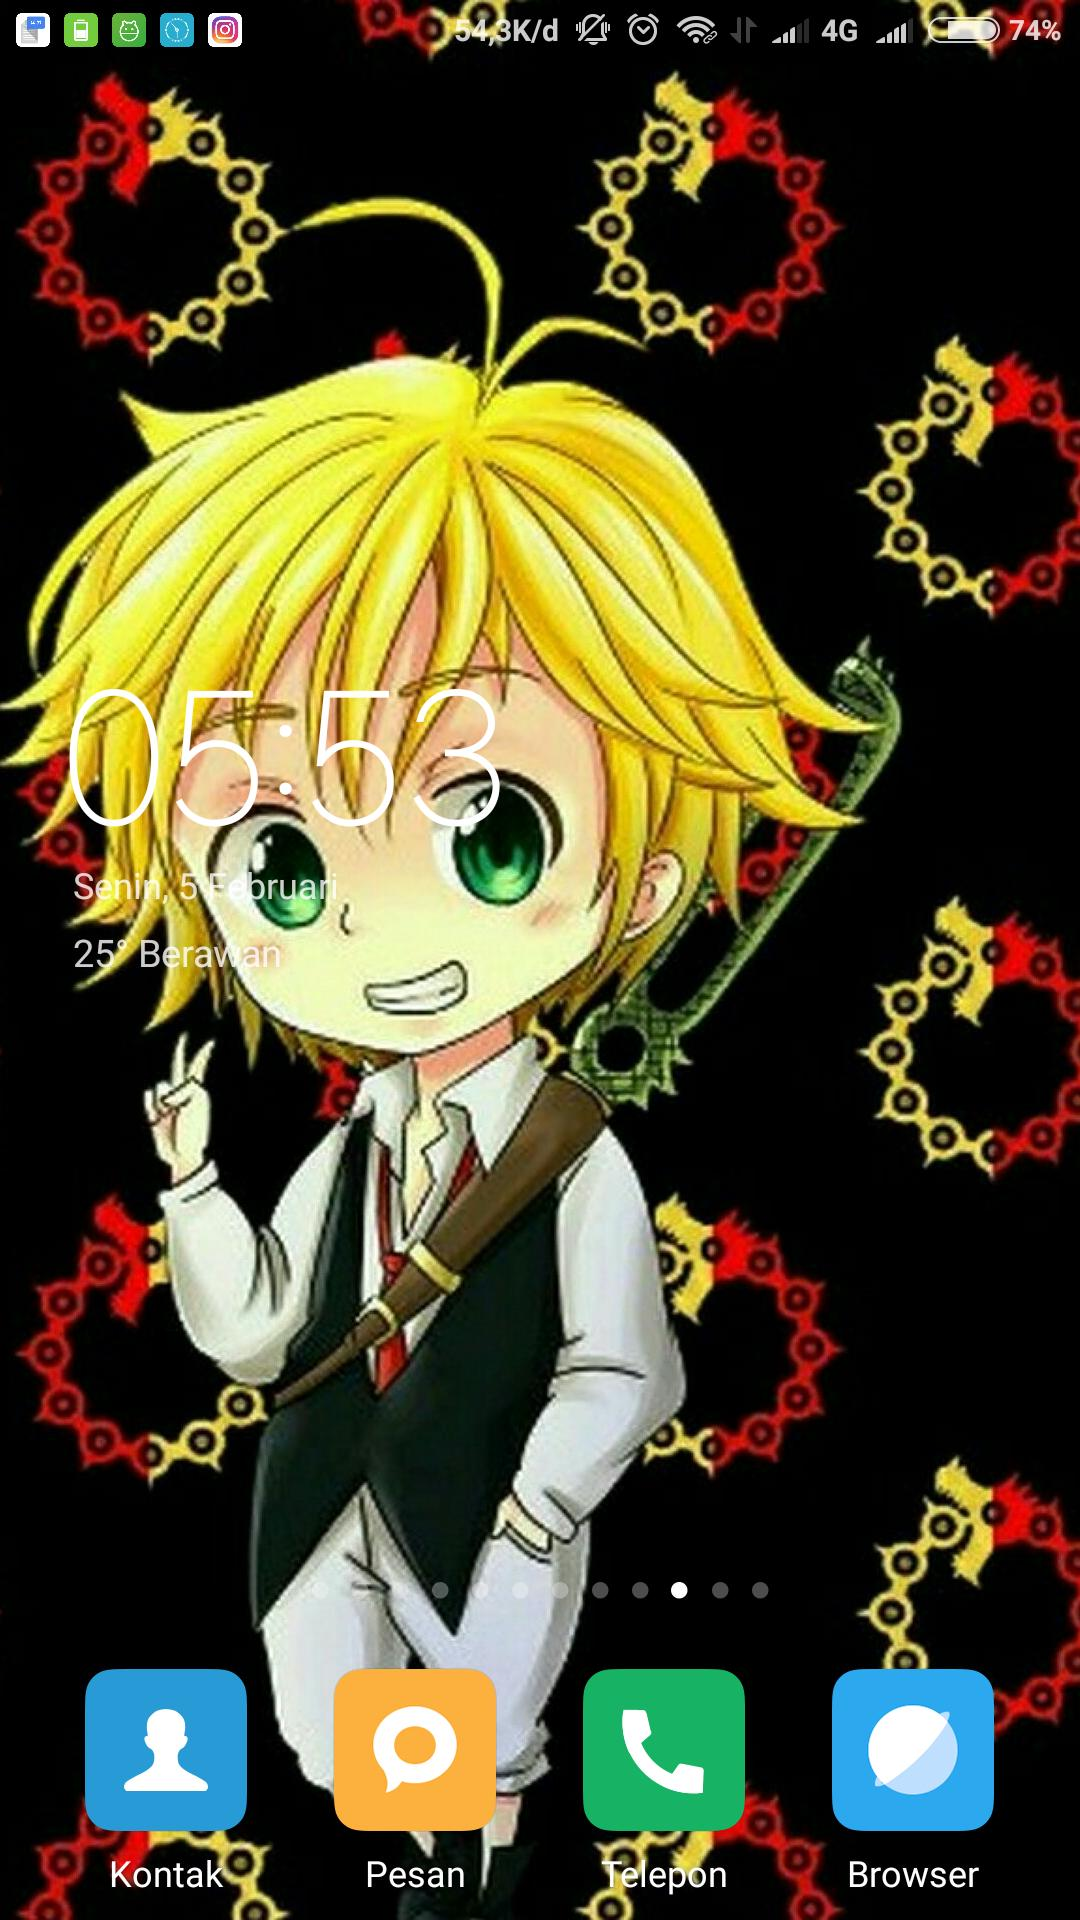 Wallpaper Anime 7 Deadly Sins Fanart For Android Apk Download